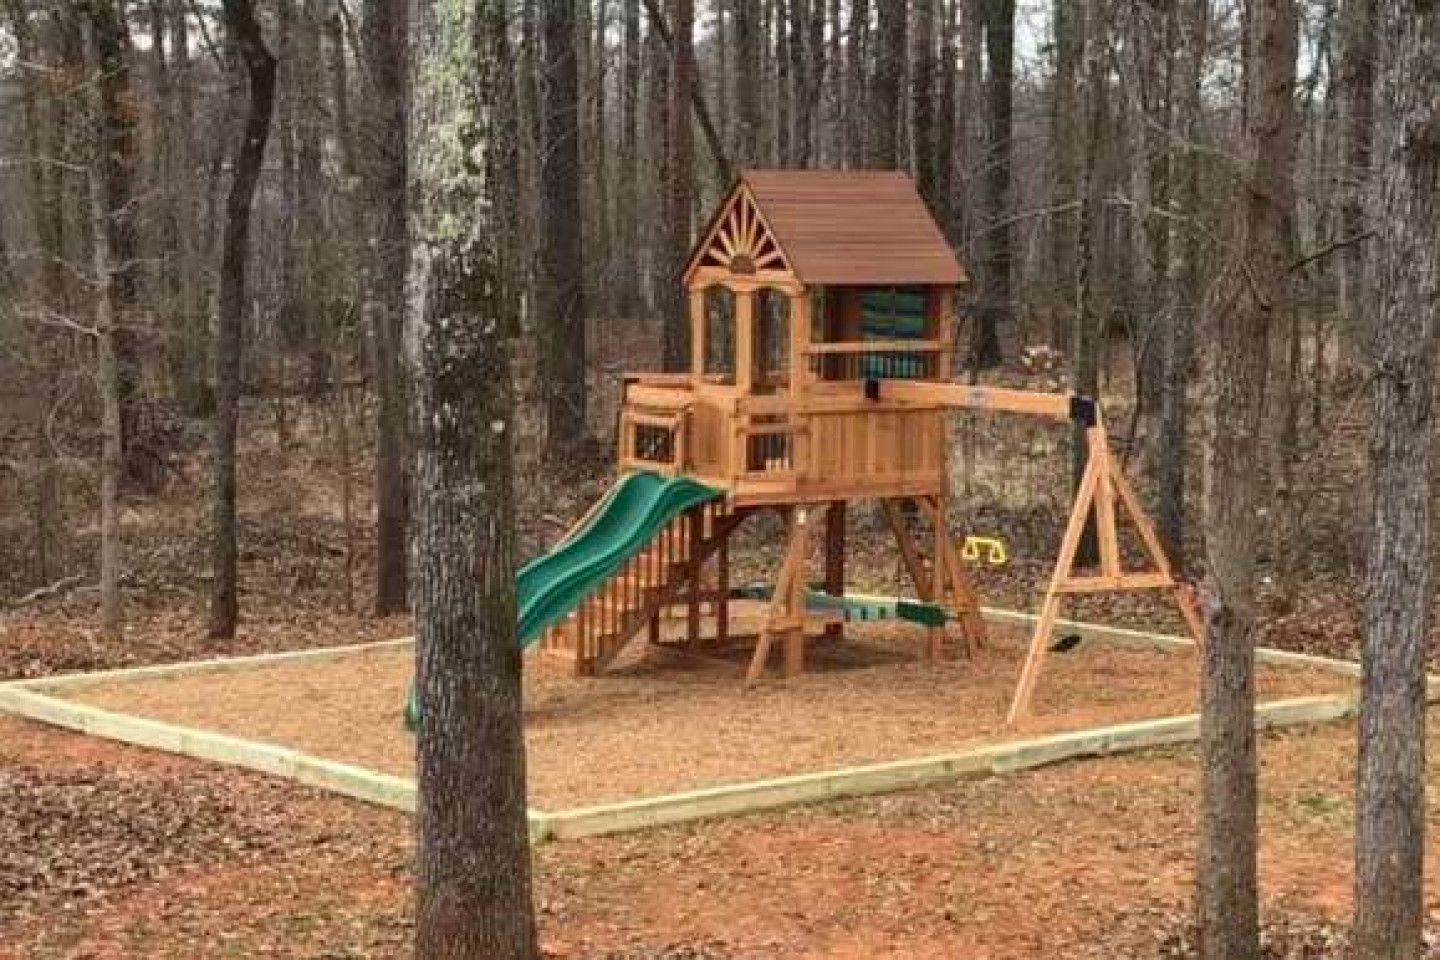 Playground set on a landscaped yard